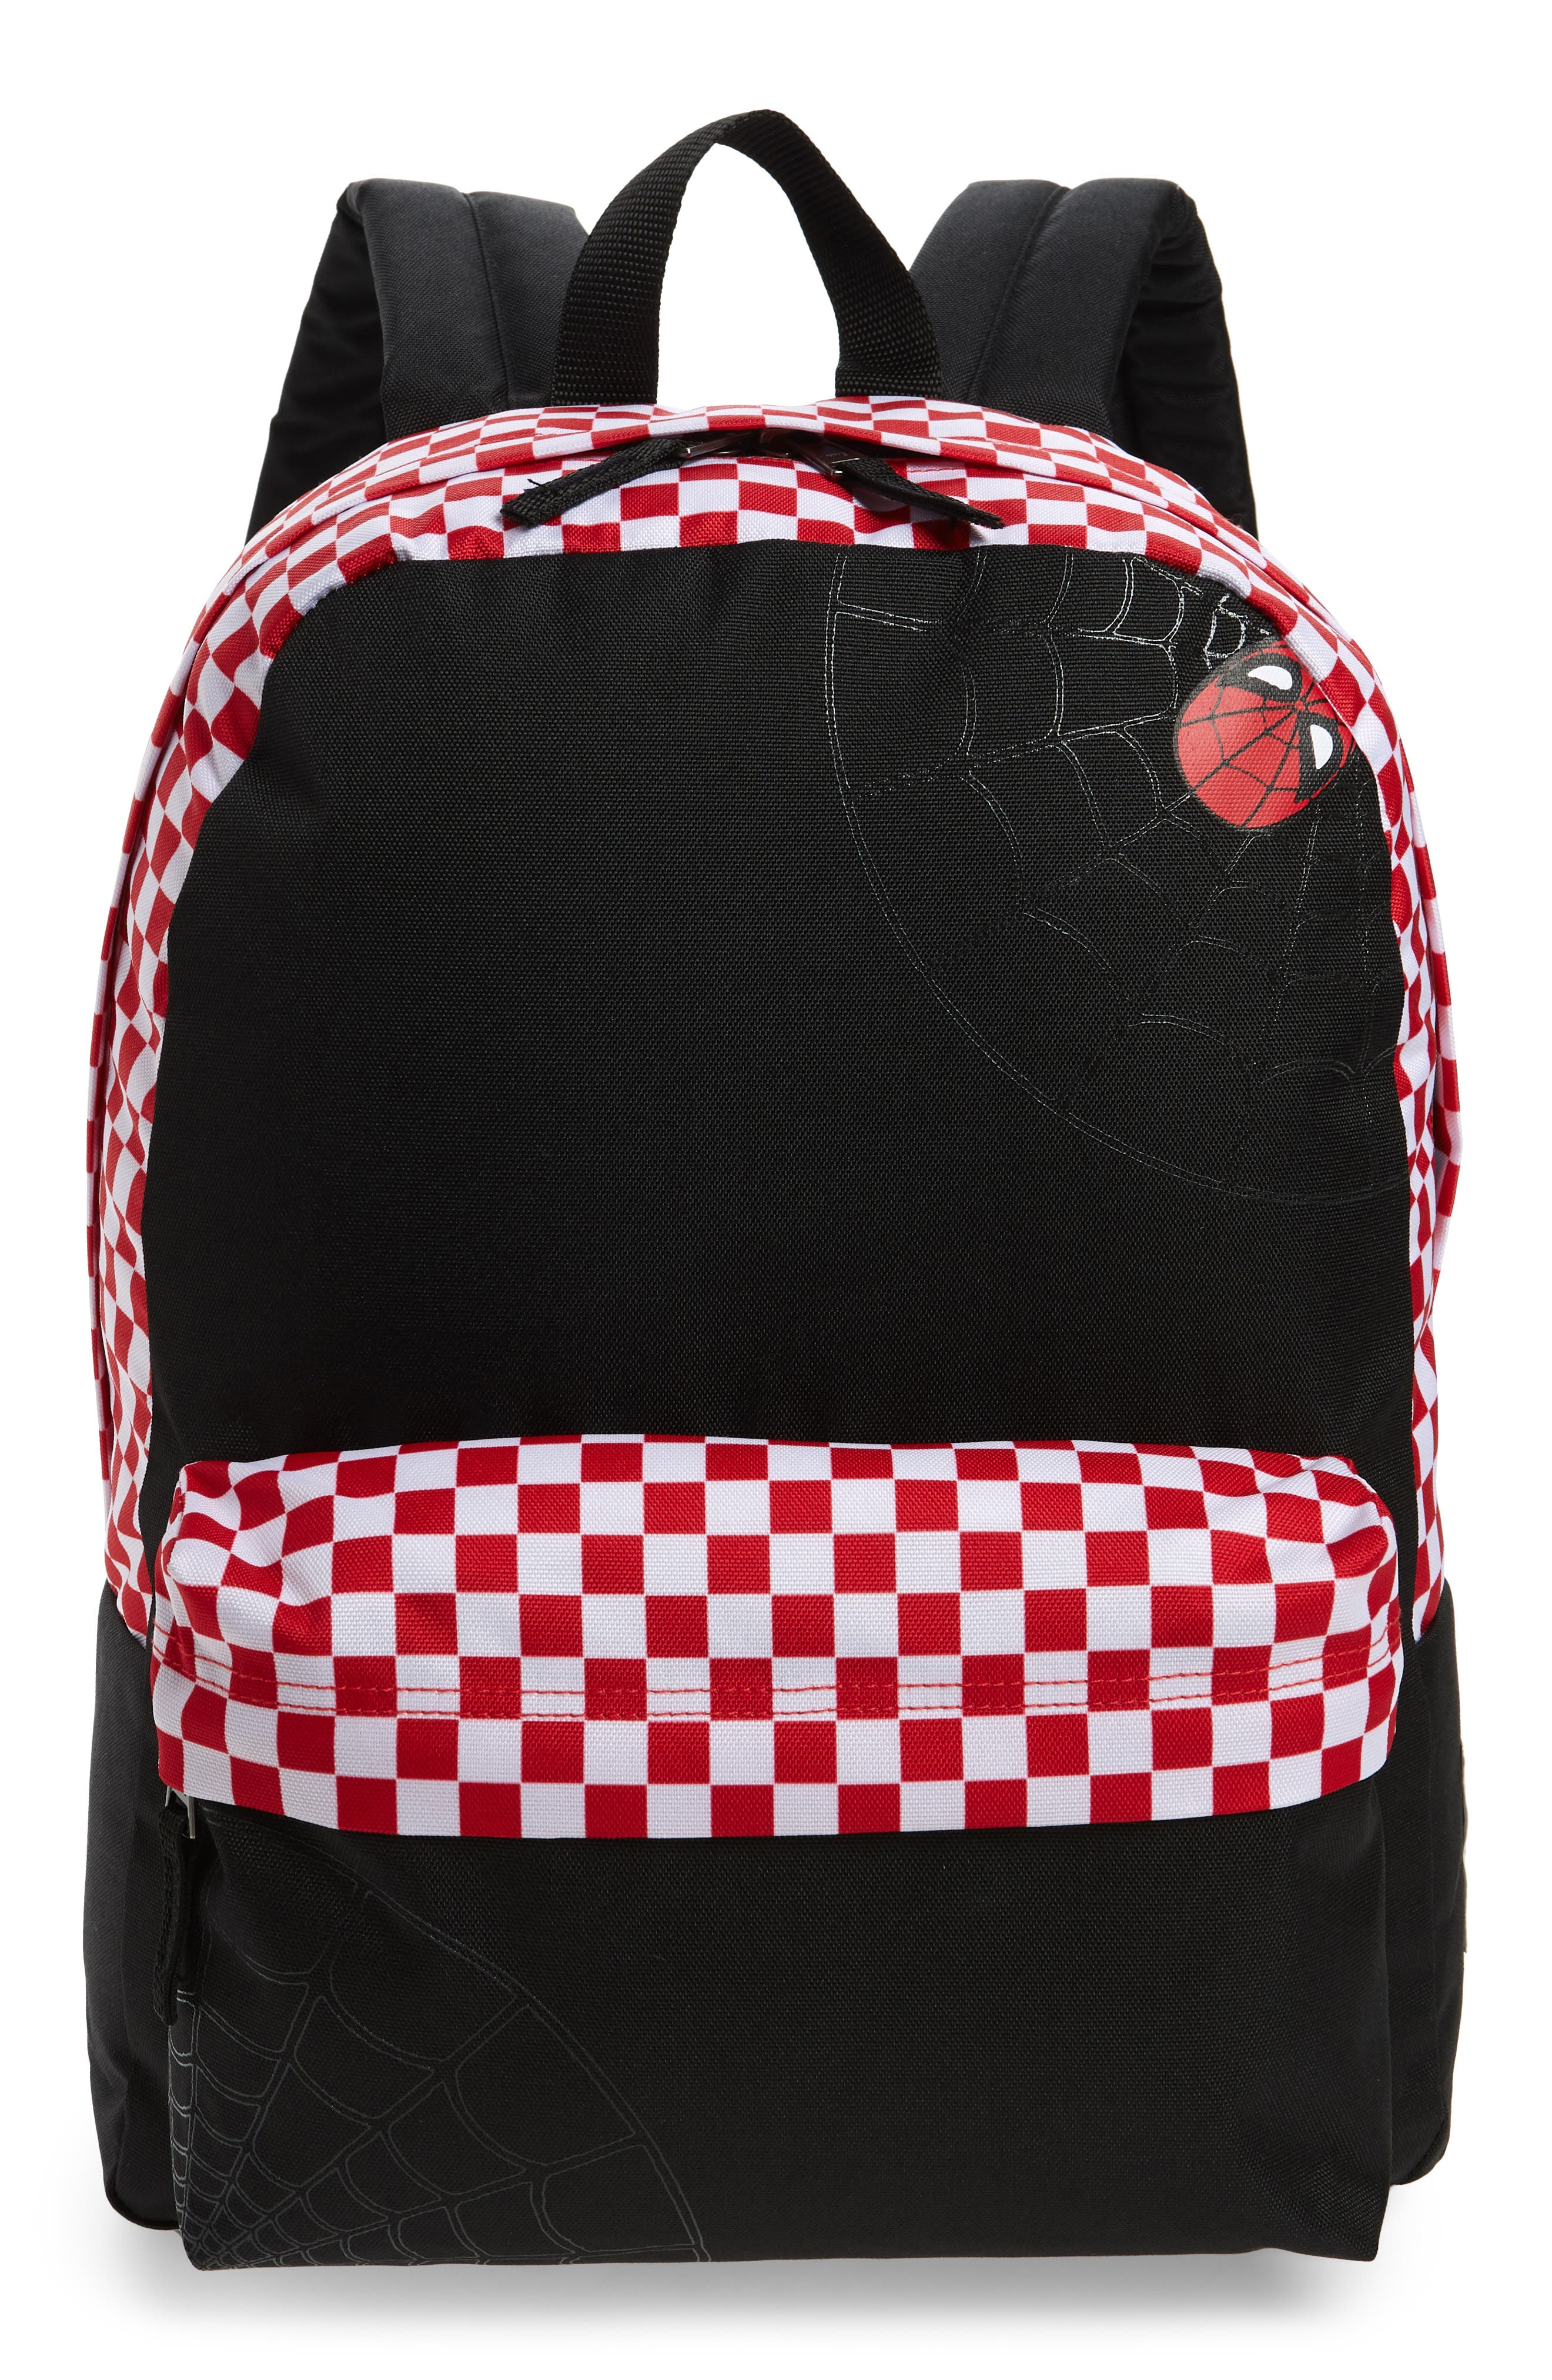 x Marvel<sup>®</sup> Spidey Realm Backpack,                         Main,                         color, Black/ Racing Red